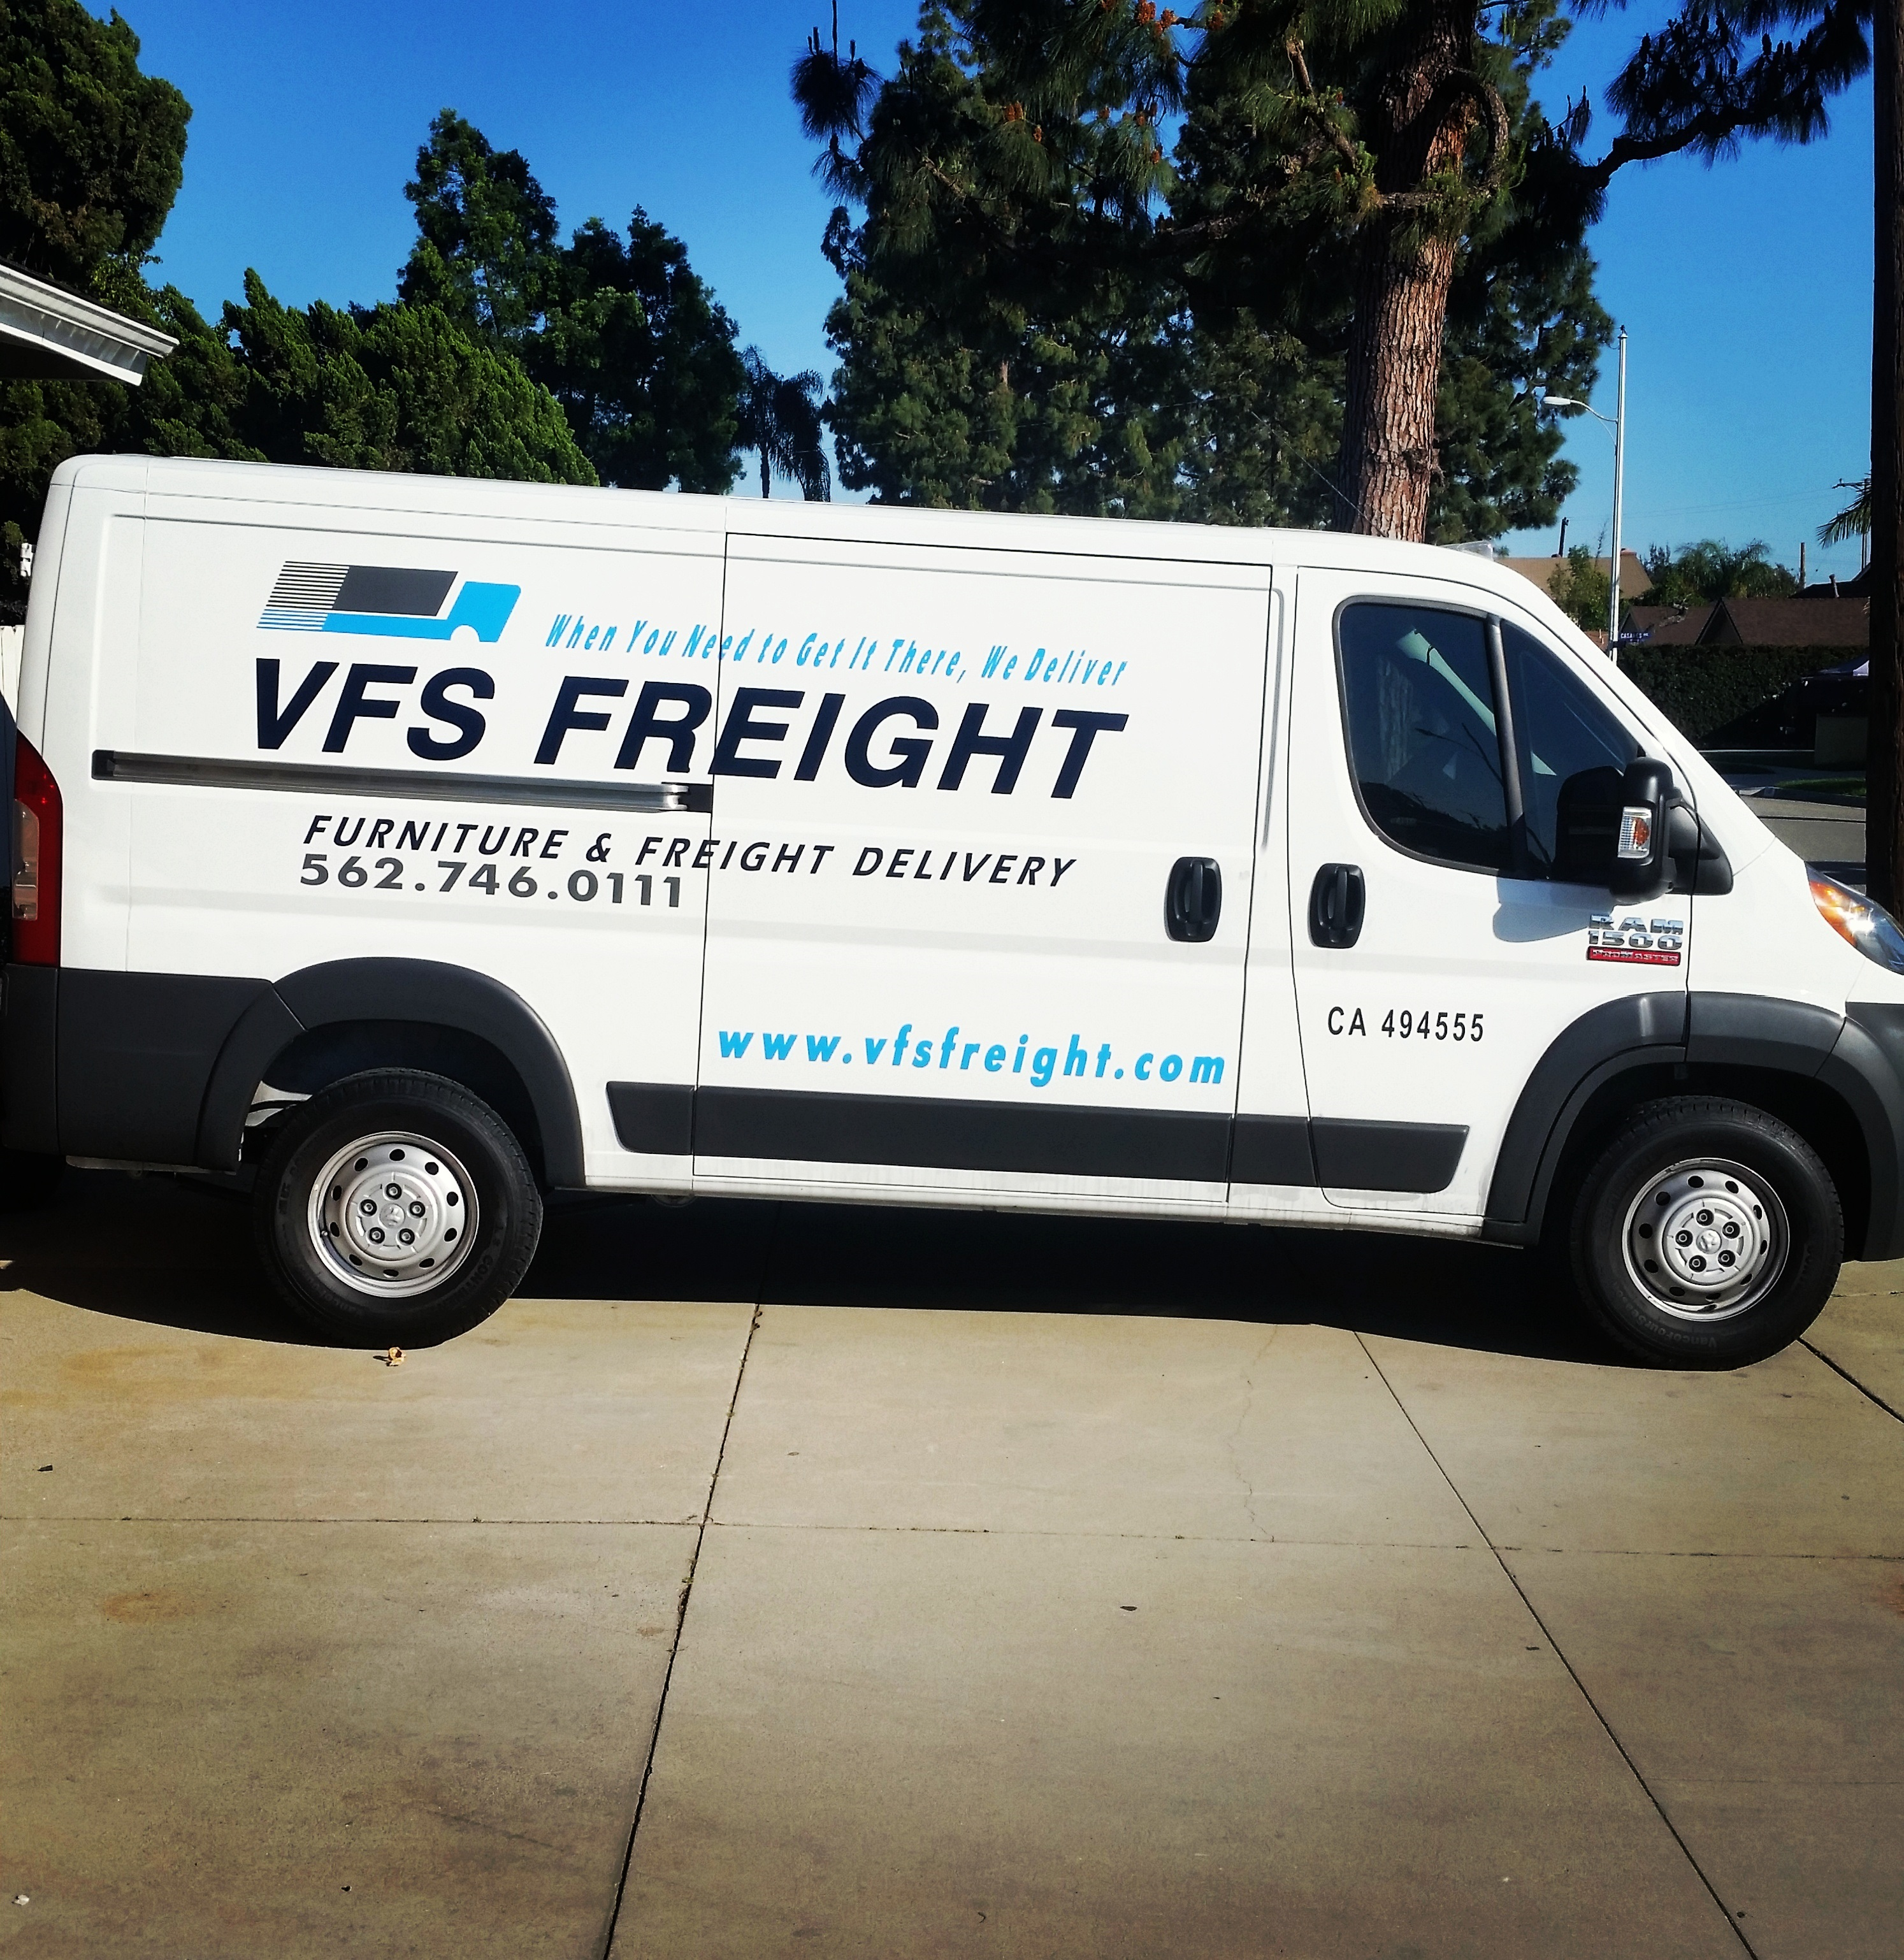 Furniture And Freight Delivery Services 340